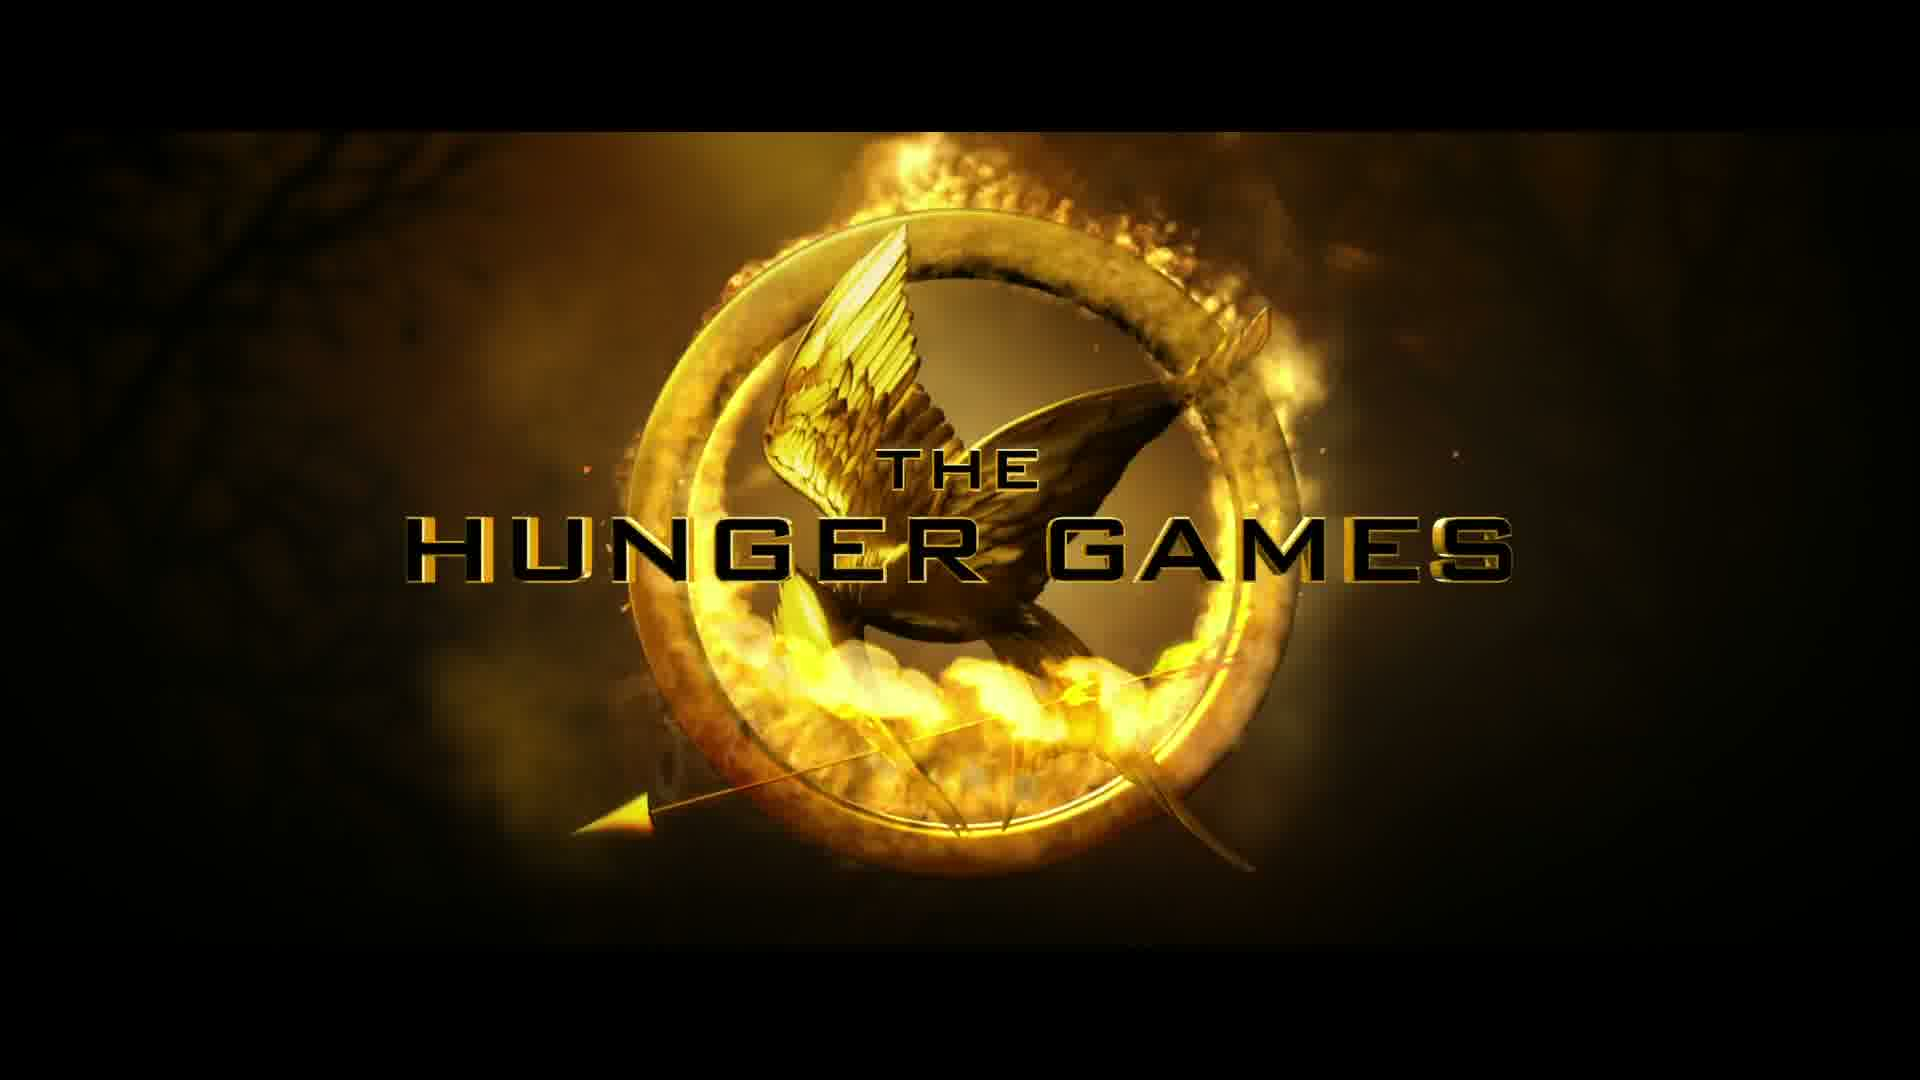 Primrose everdeen images the hunger games trailer 2 hd primrose everdeen images the hunger games trailer 2 hd wallpaper and background photos voltagebd Image collections